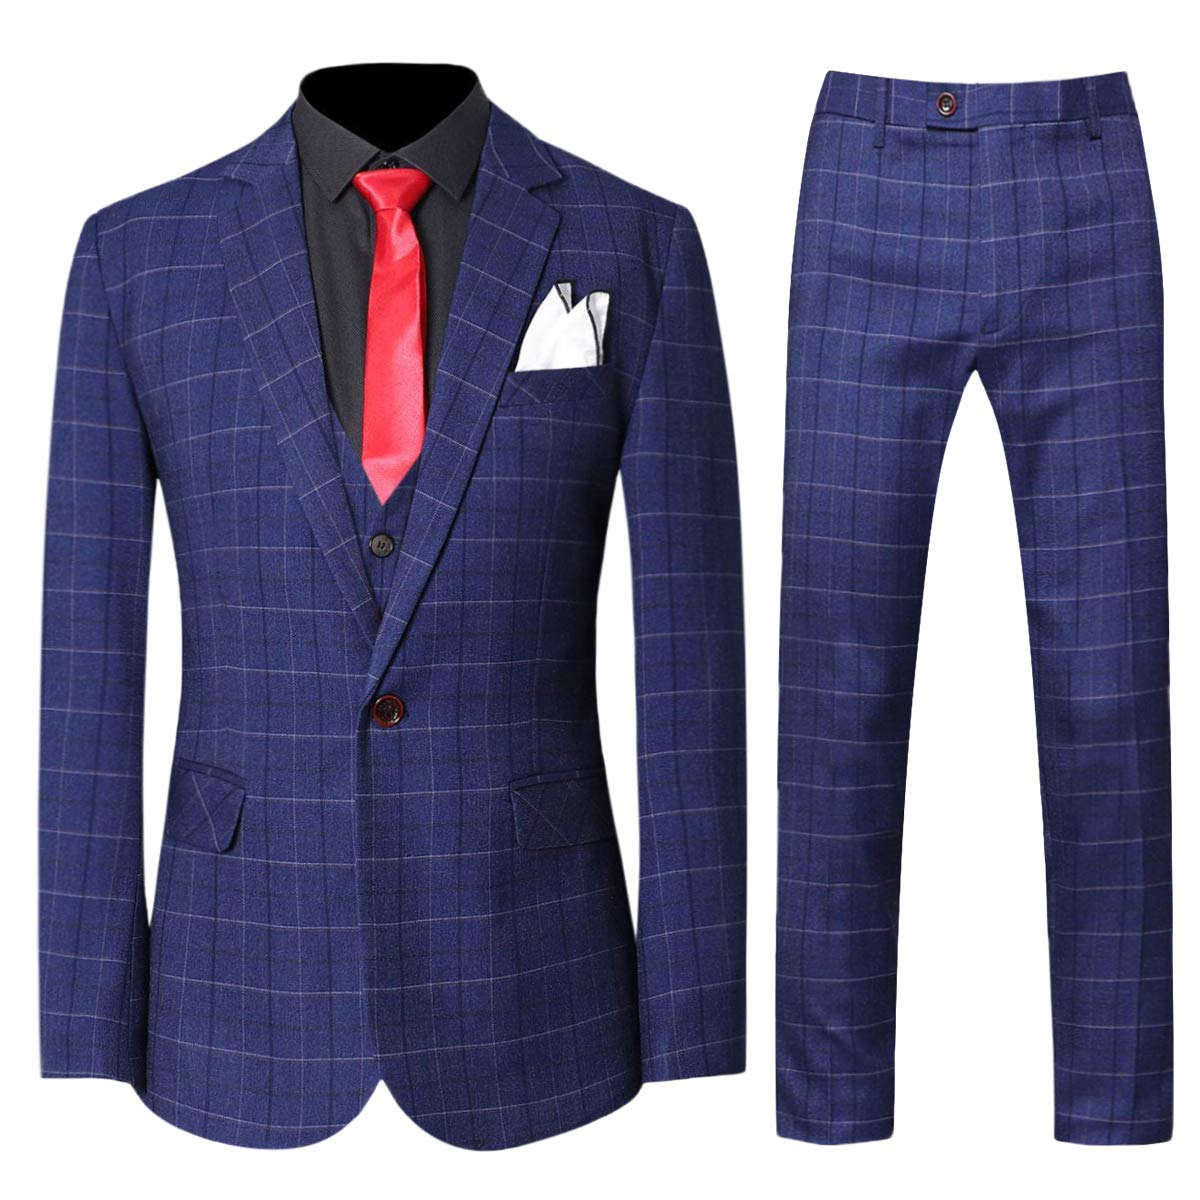 1920s Men's Suits History Mens 3-Piece Plaid Suit Set Modern Fit Jacket Tux Blazer Vest Pants $98.99 AT vintagedancer.com